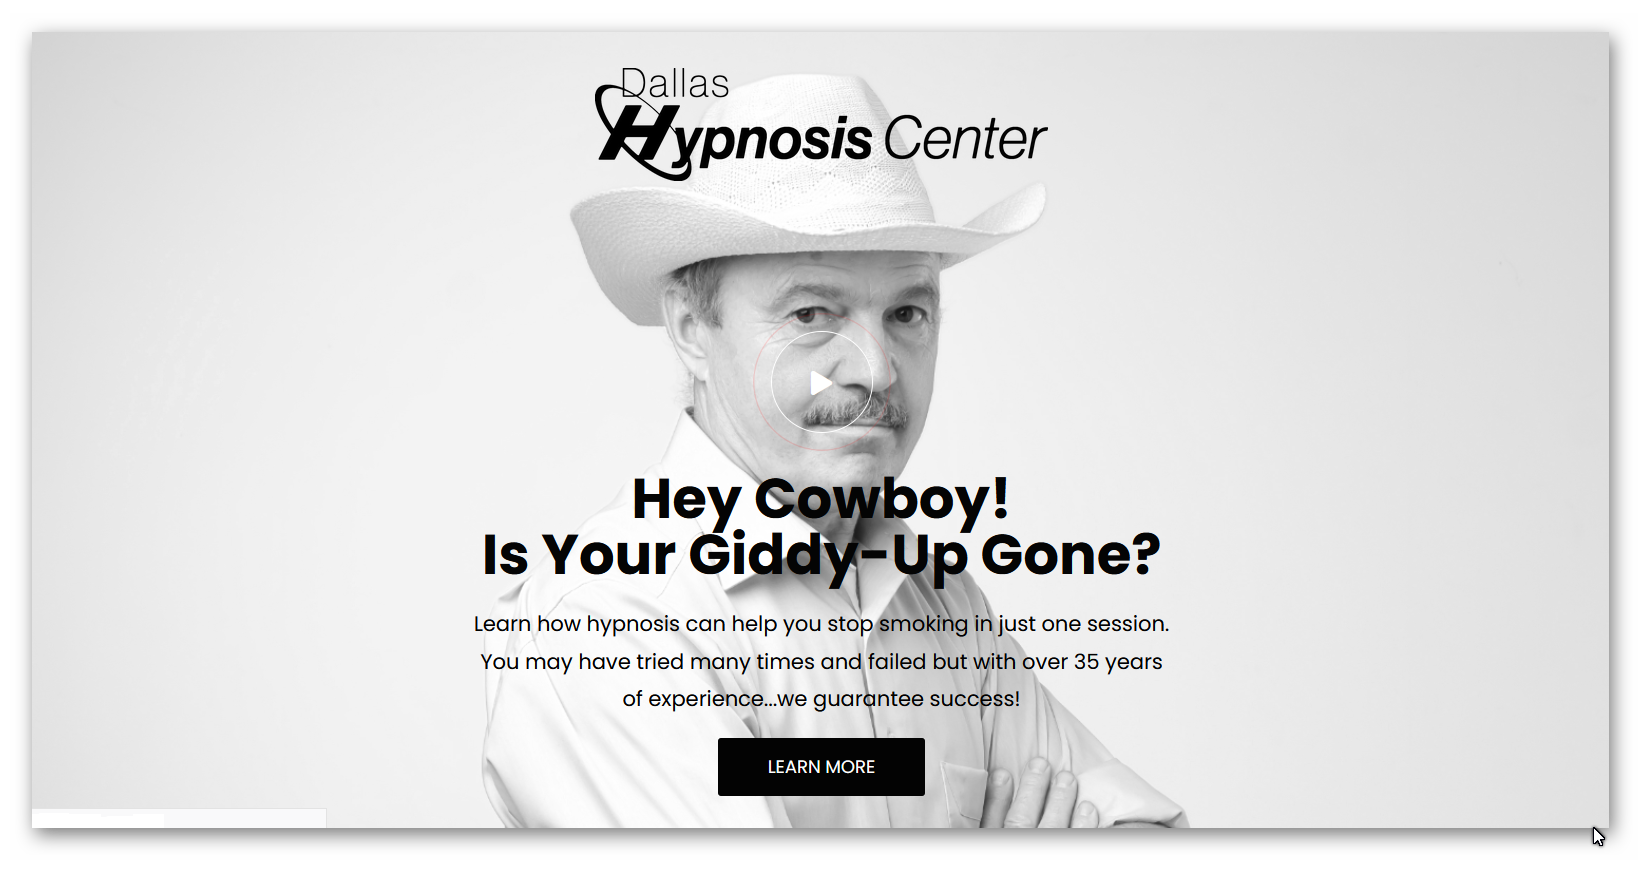 Hey Cowboy! Is Your Giddy-Up Gone? Stop Smoking!